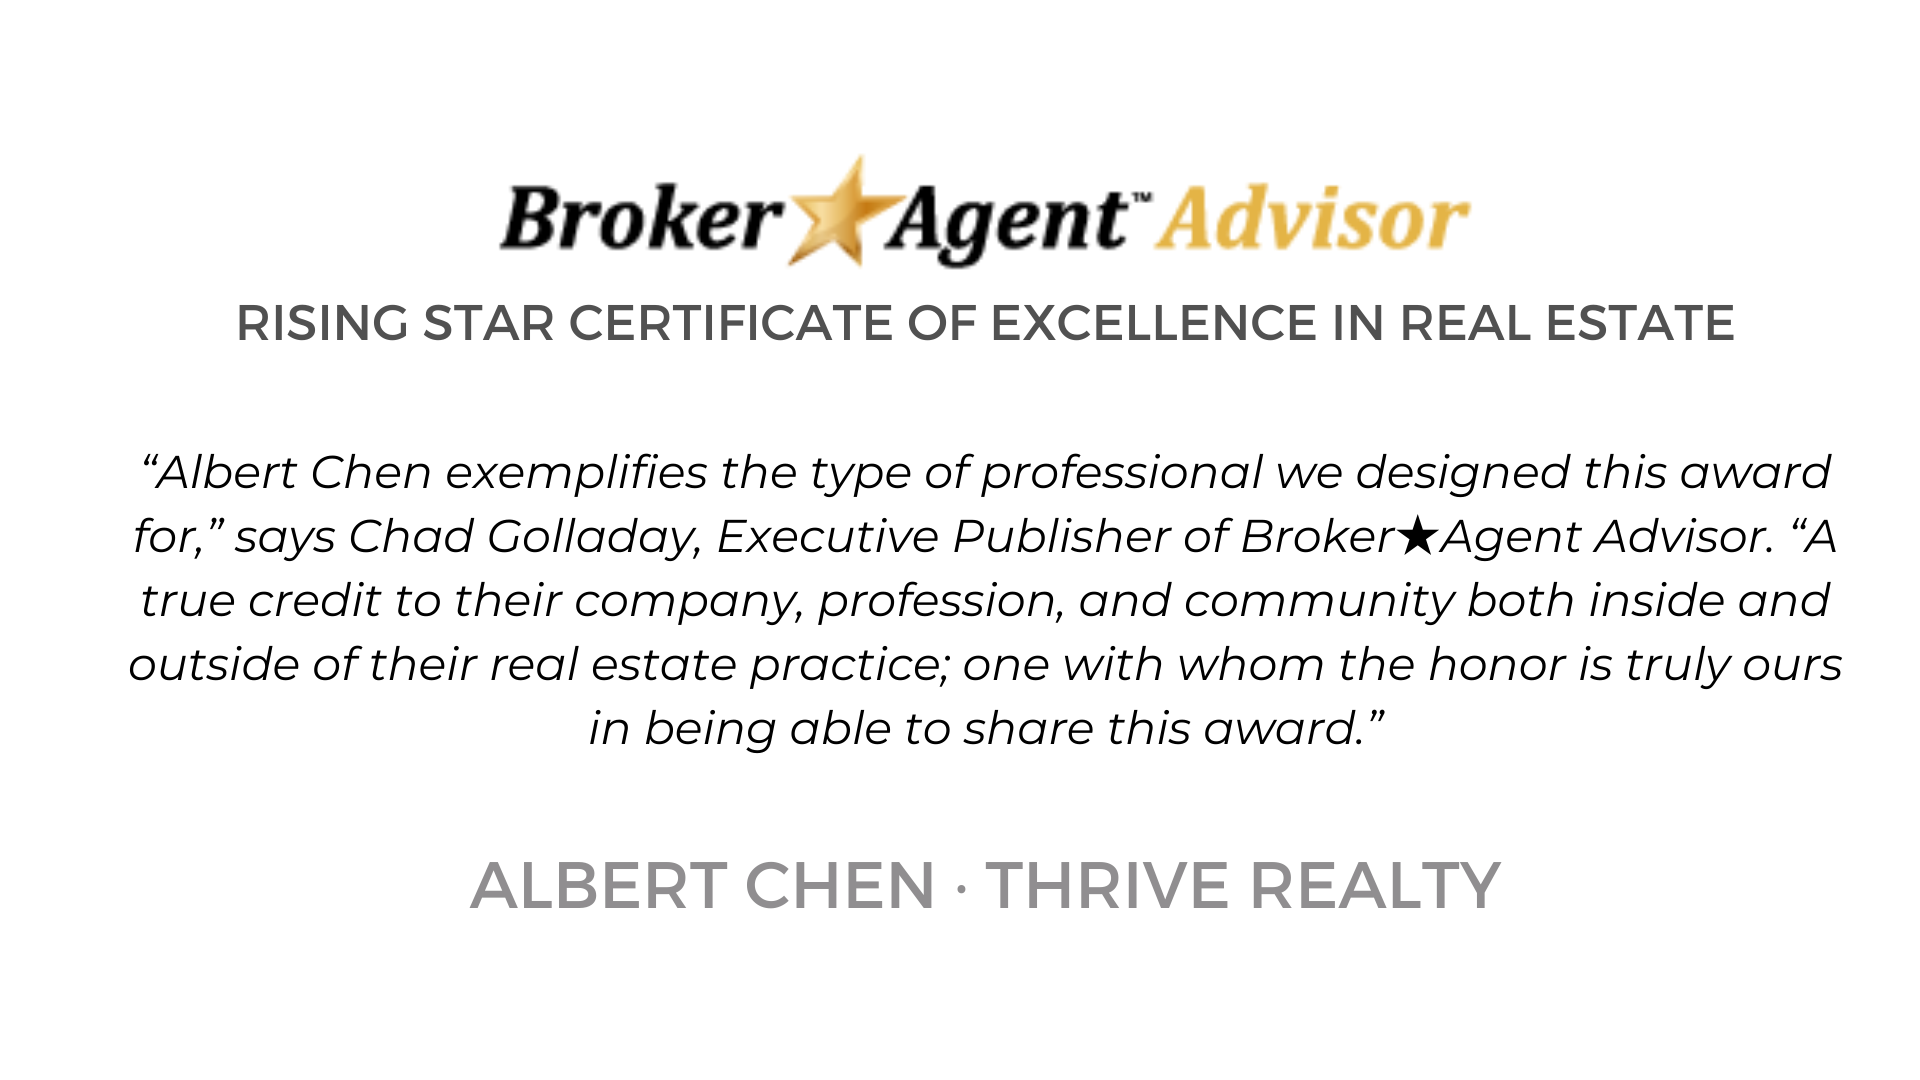 Albert Chen is recognized by Broker Advisor for excellence